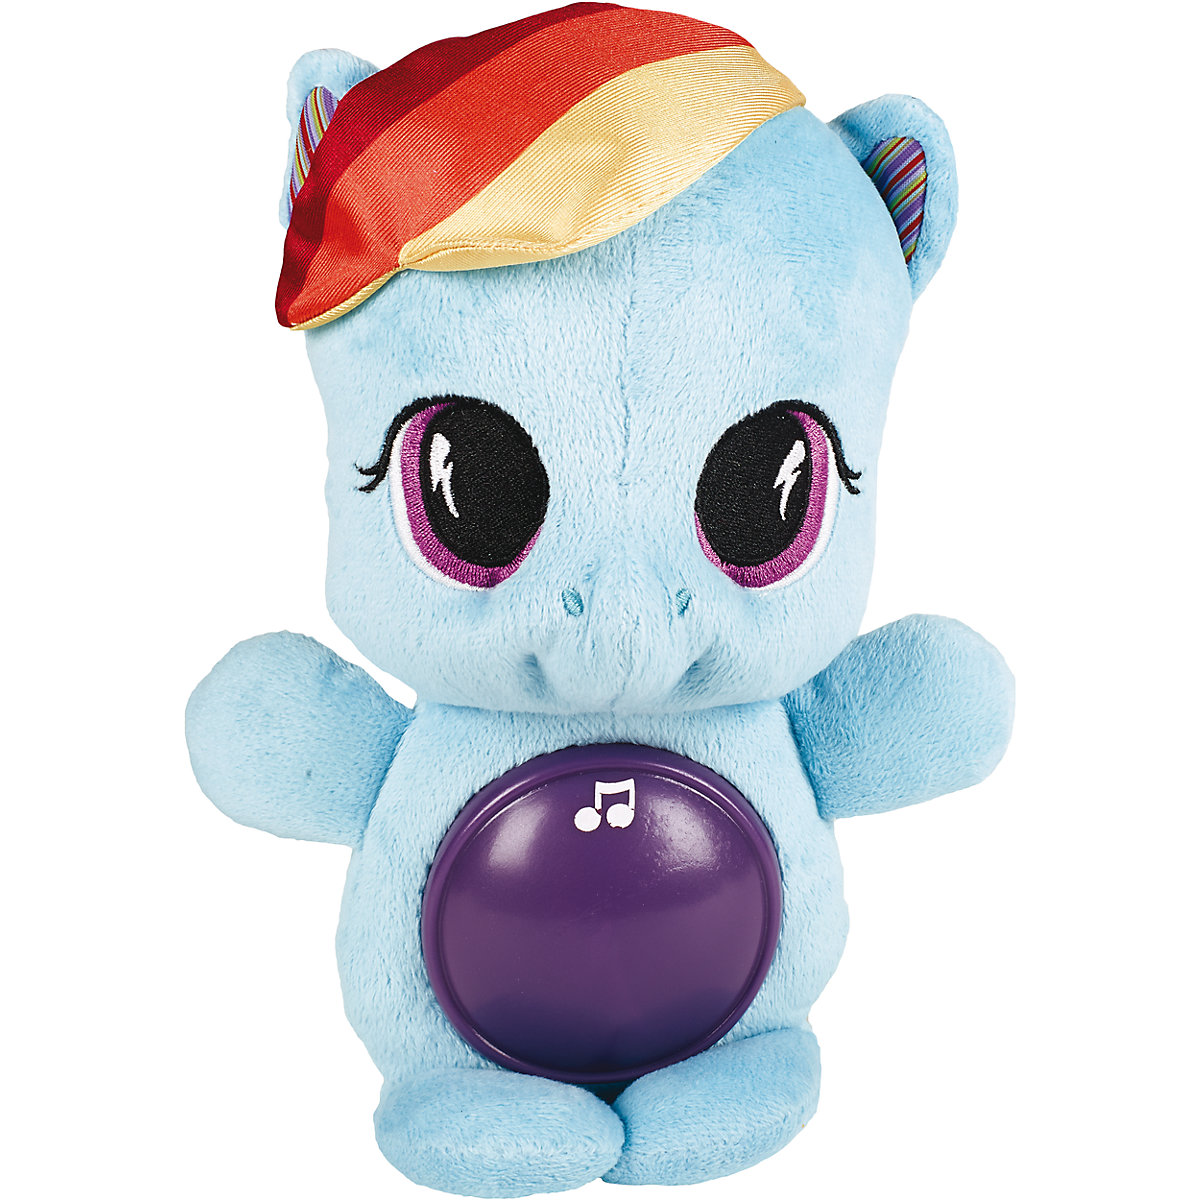 HASBRO Stuffed & Plush Animals 4252295 Childrens Toys Pets Unicorn Toy For Sleeping My Little Pony MTpromo